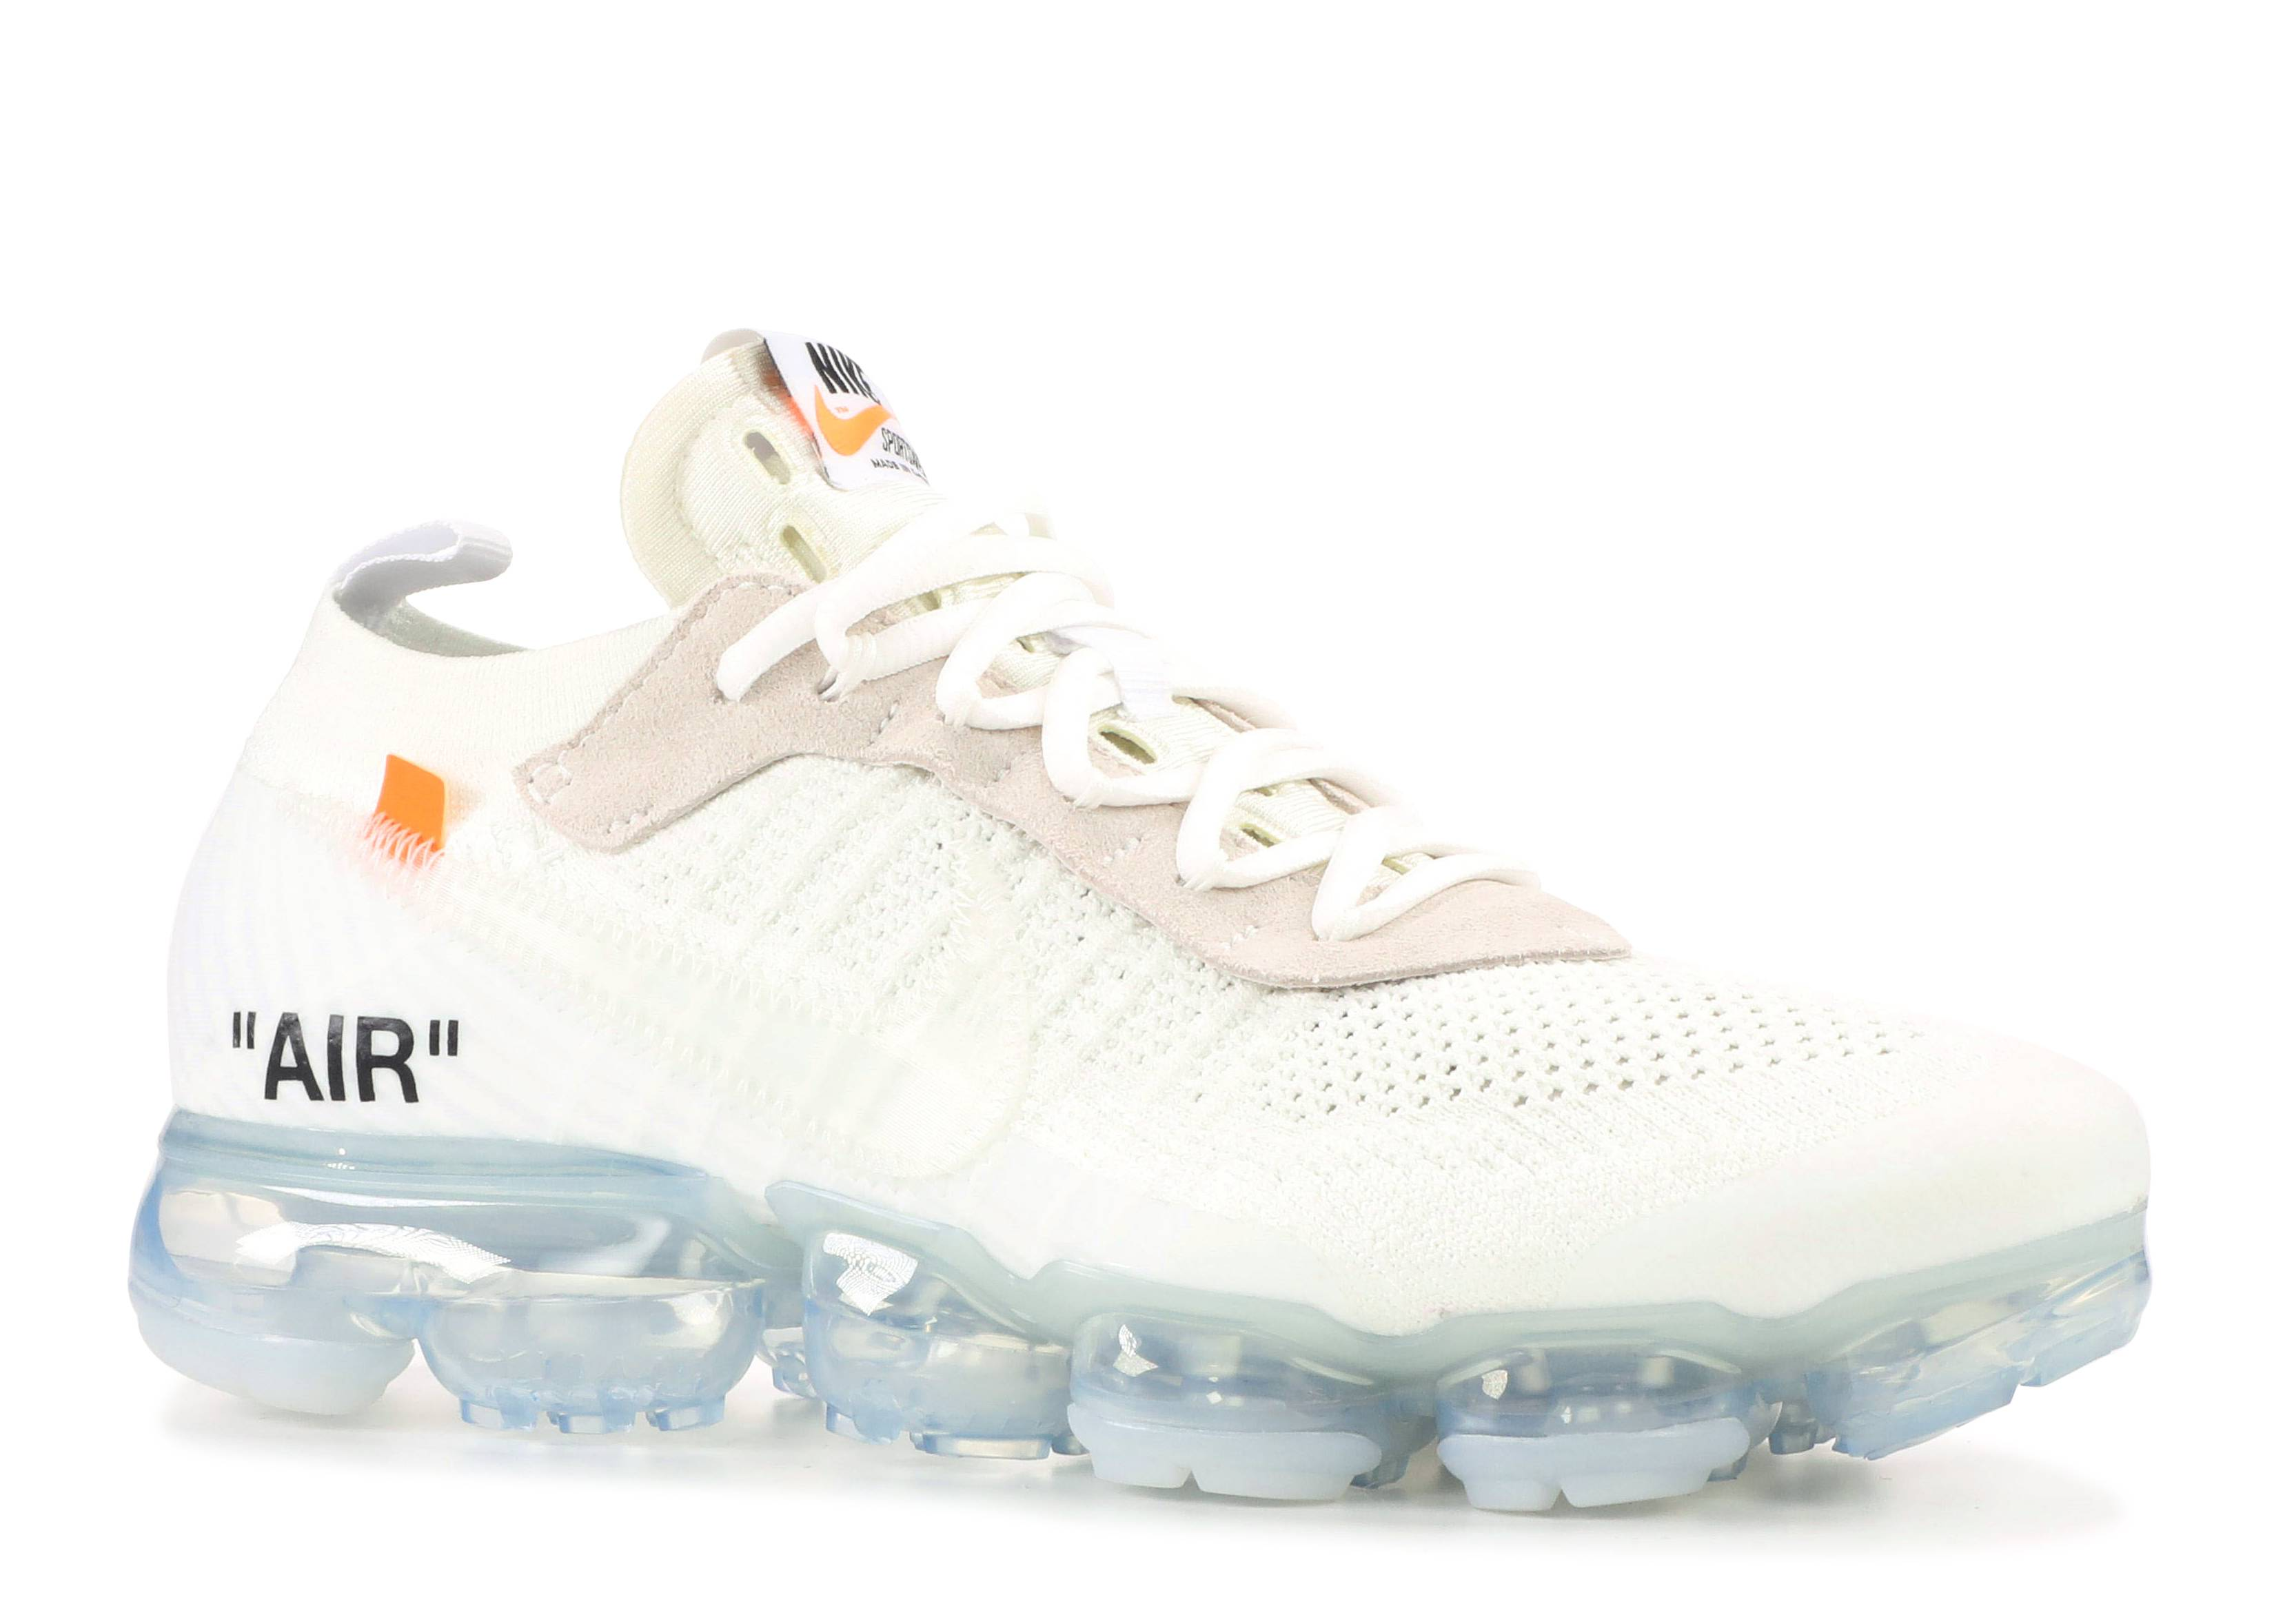 panel Reactor Aprendiz  Off White X Air VaporMax 'Part 2' - Nike - AA3831 100 - white/total  orange-black | Flight Club